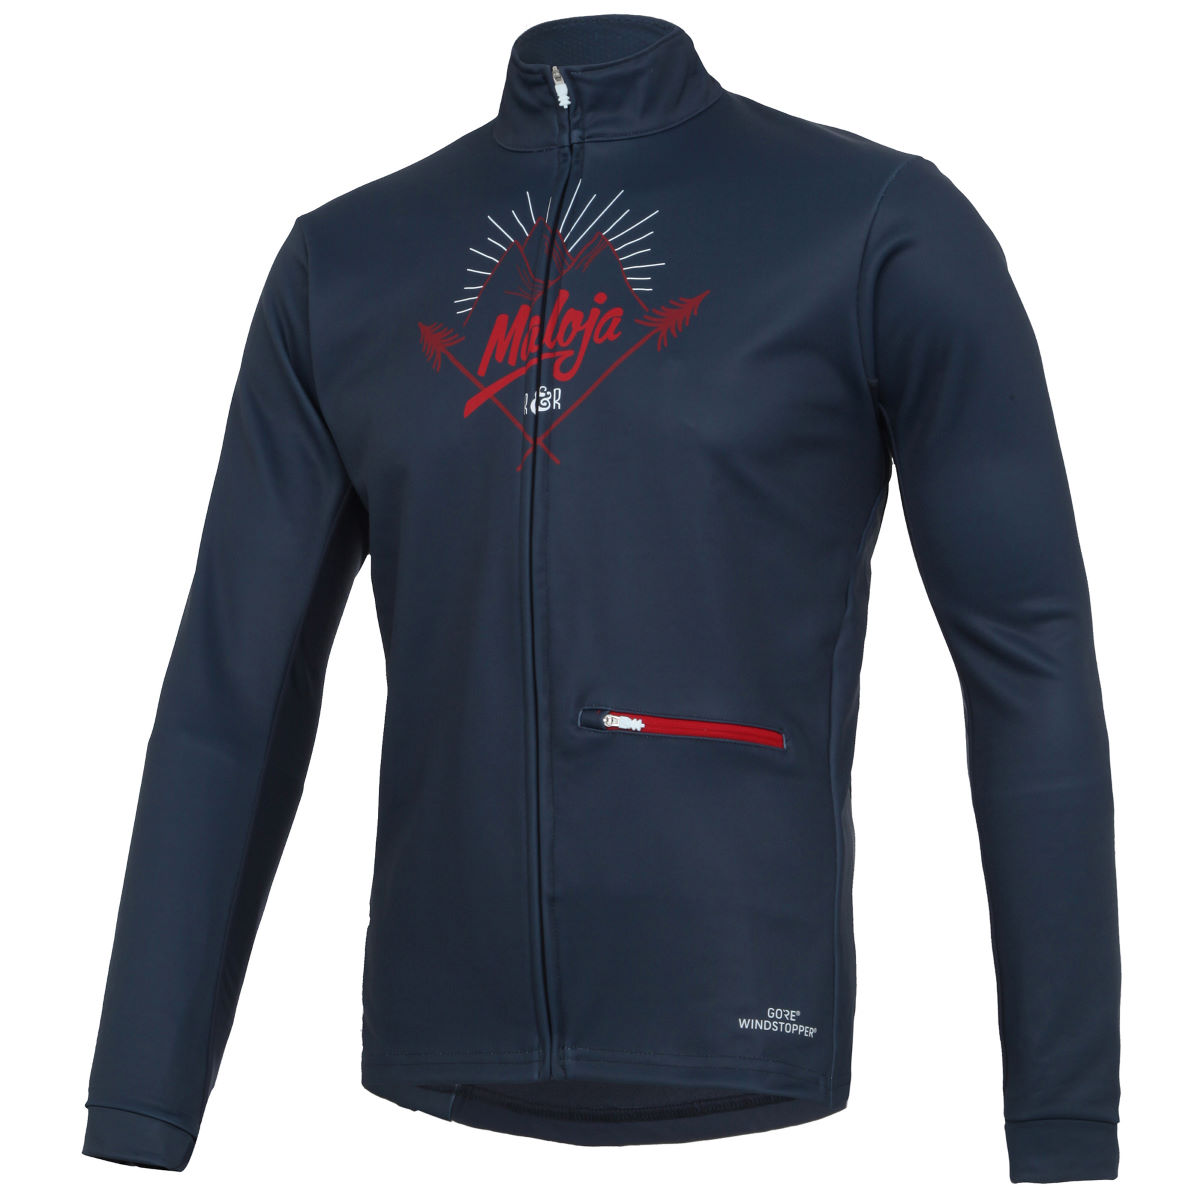 Veste coupe-vent Maloja BurtM. - M Nightfall Coupe-vents vélo